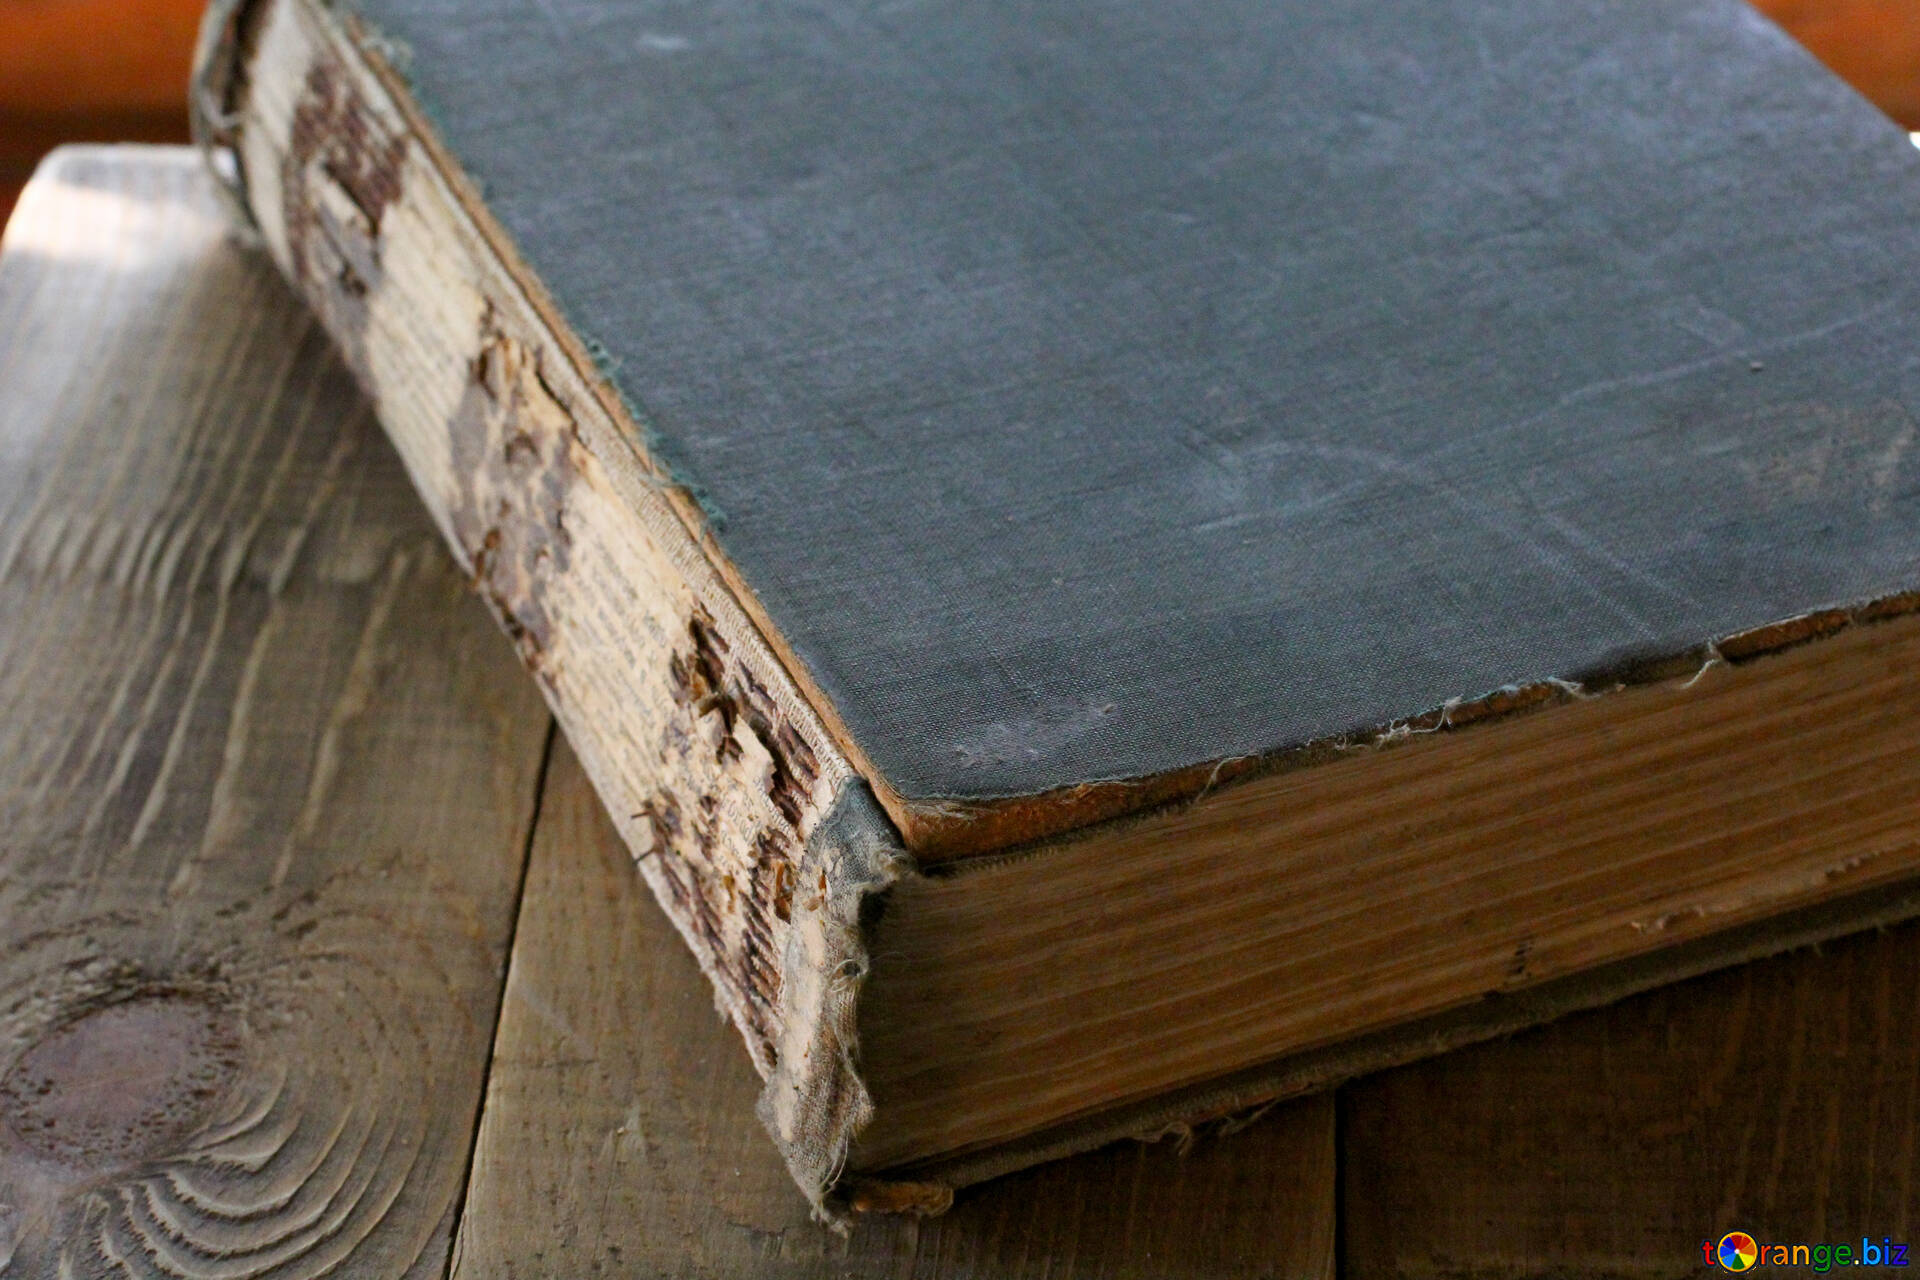 The Book Is On The Table The Book Is On The Edge Of Table Book 33986